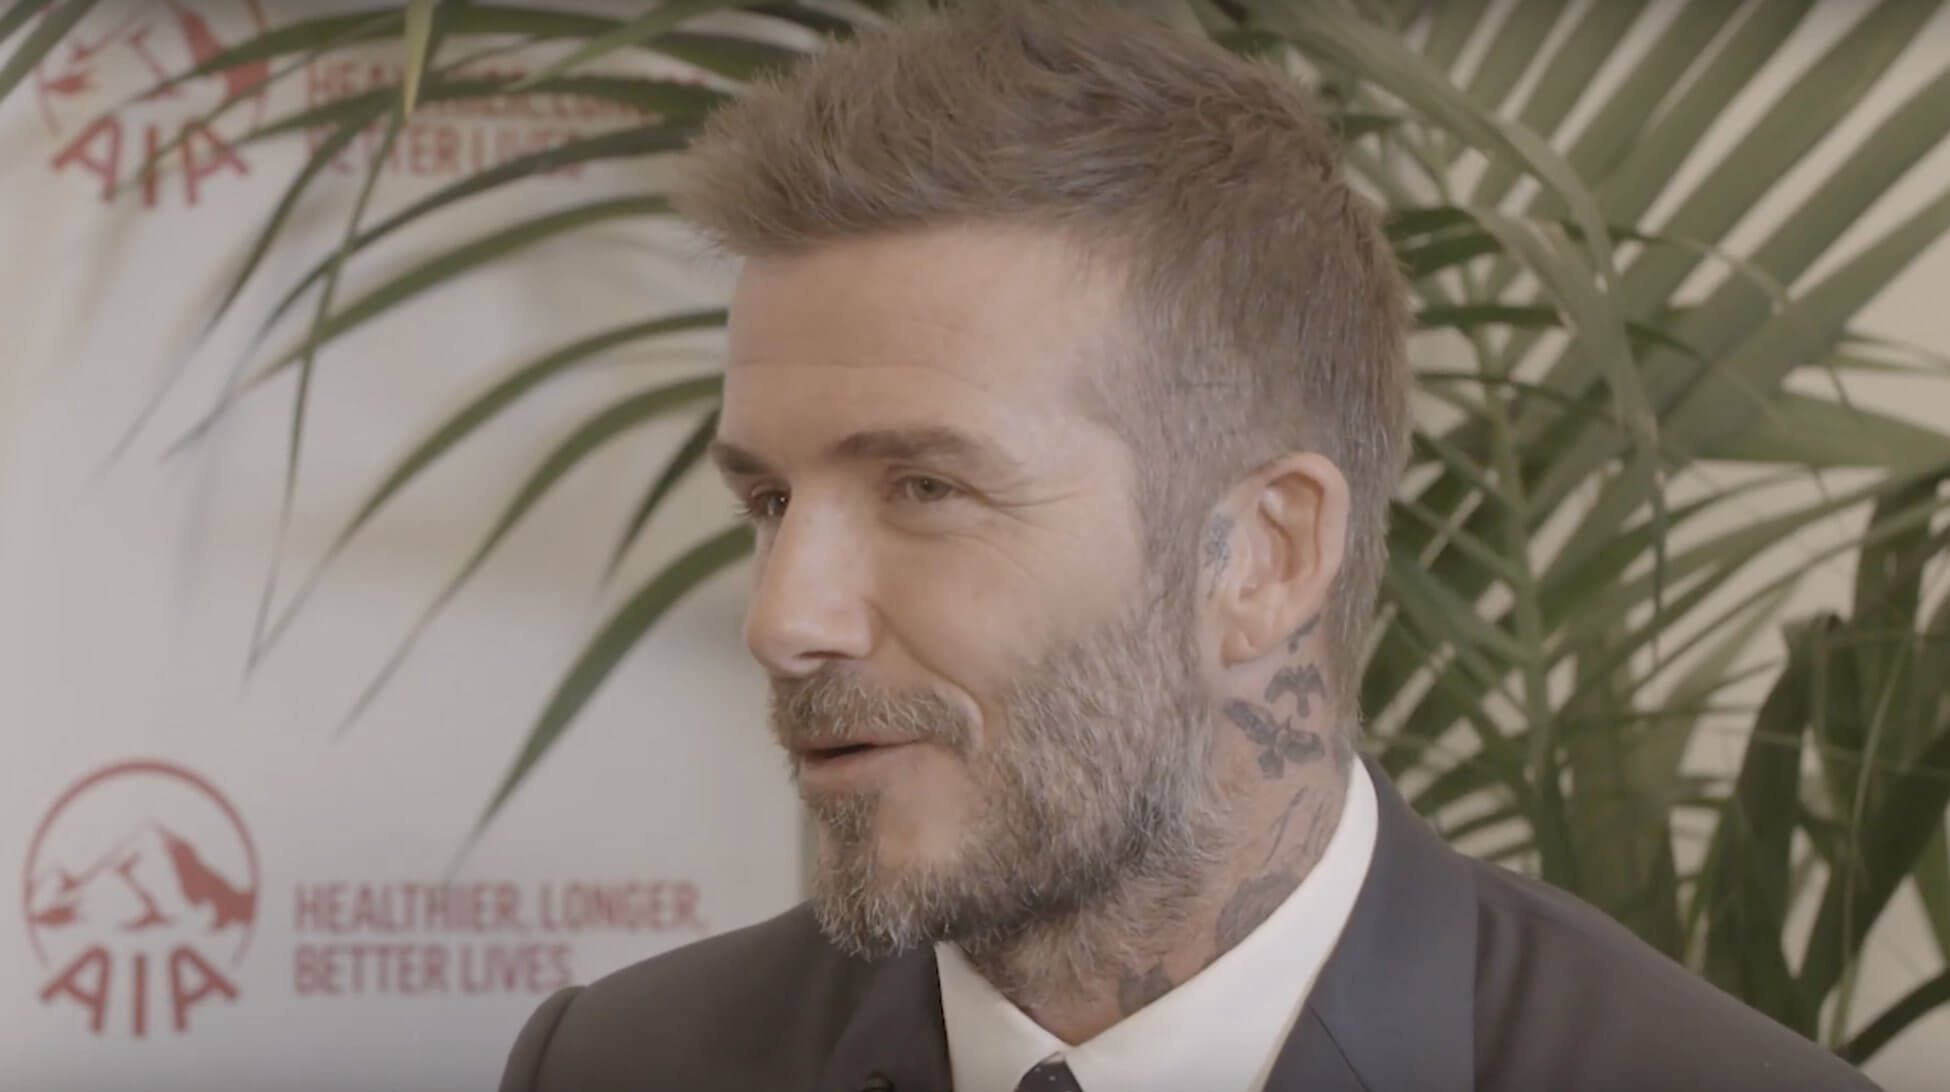 In conversation: David Beckham and Laura Henshaw